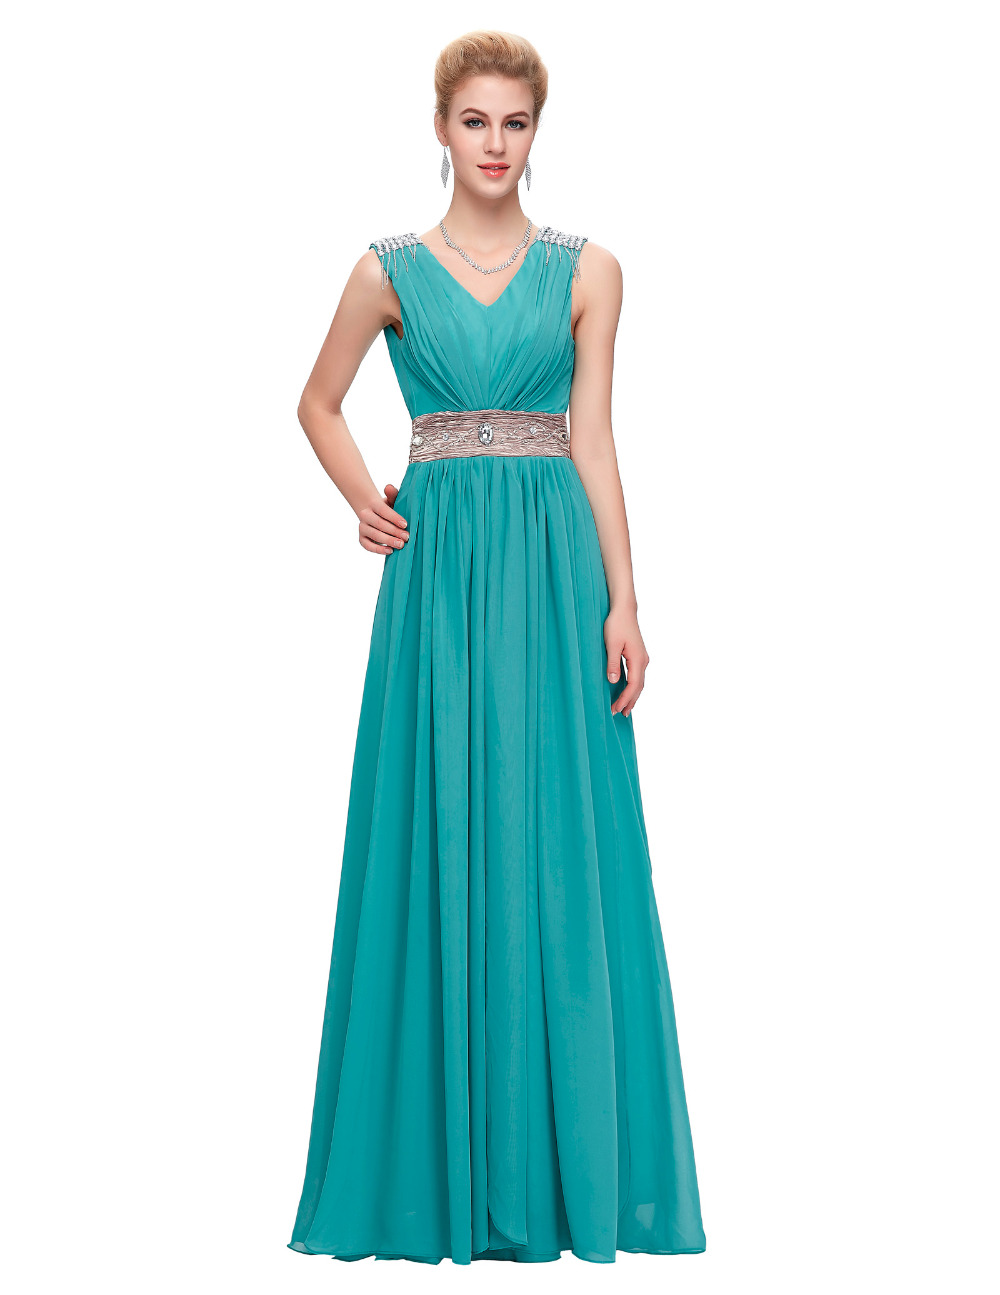 Cheap turquoise bridesmaid dresses discount wedding dresses for Cheap wedding dresses in ct